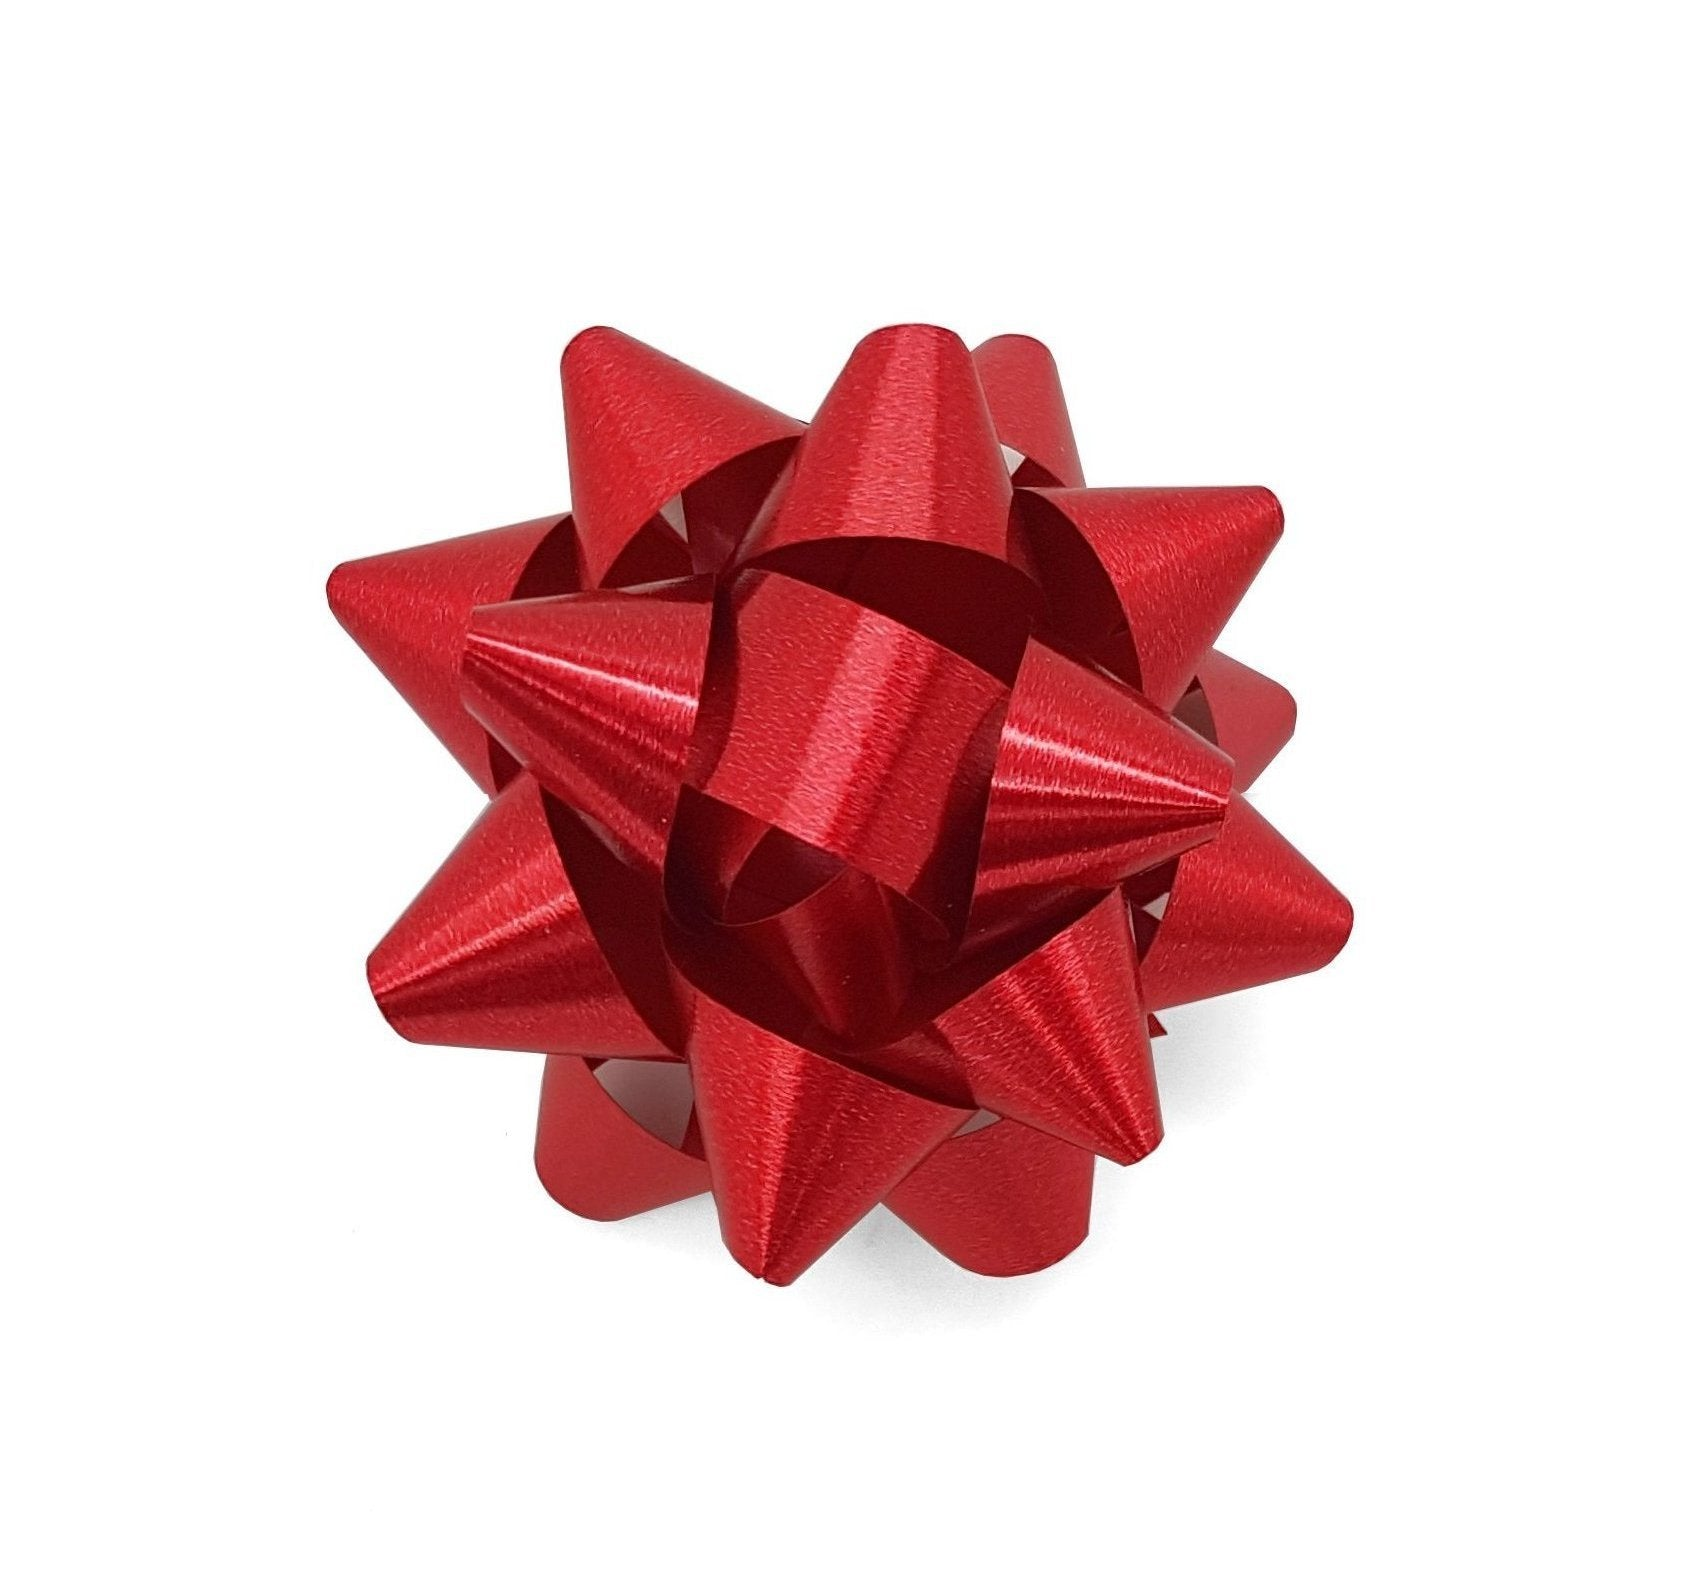 Matte Metallic Red Star Bow-Deep Red Gift Bow